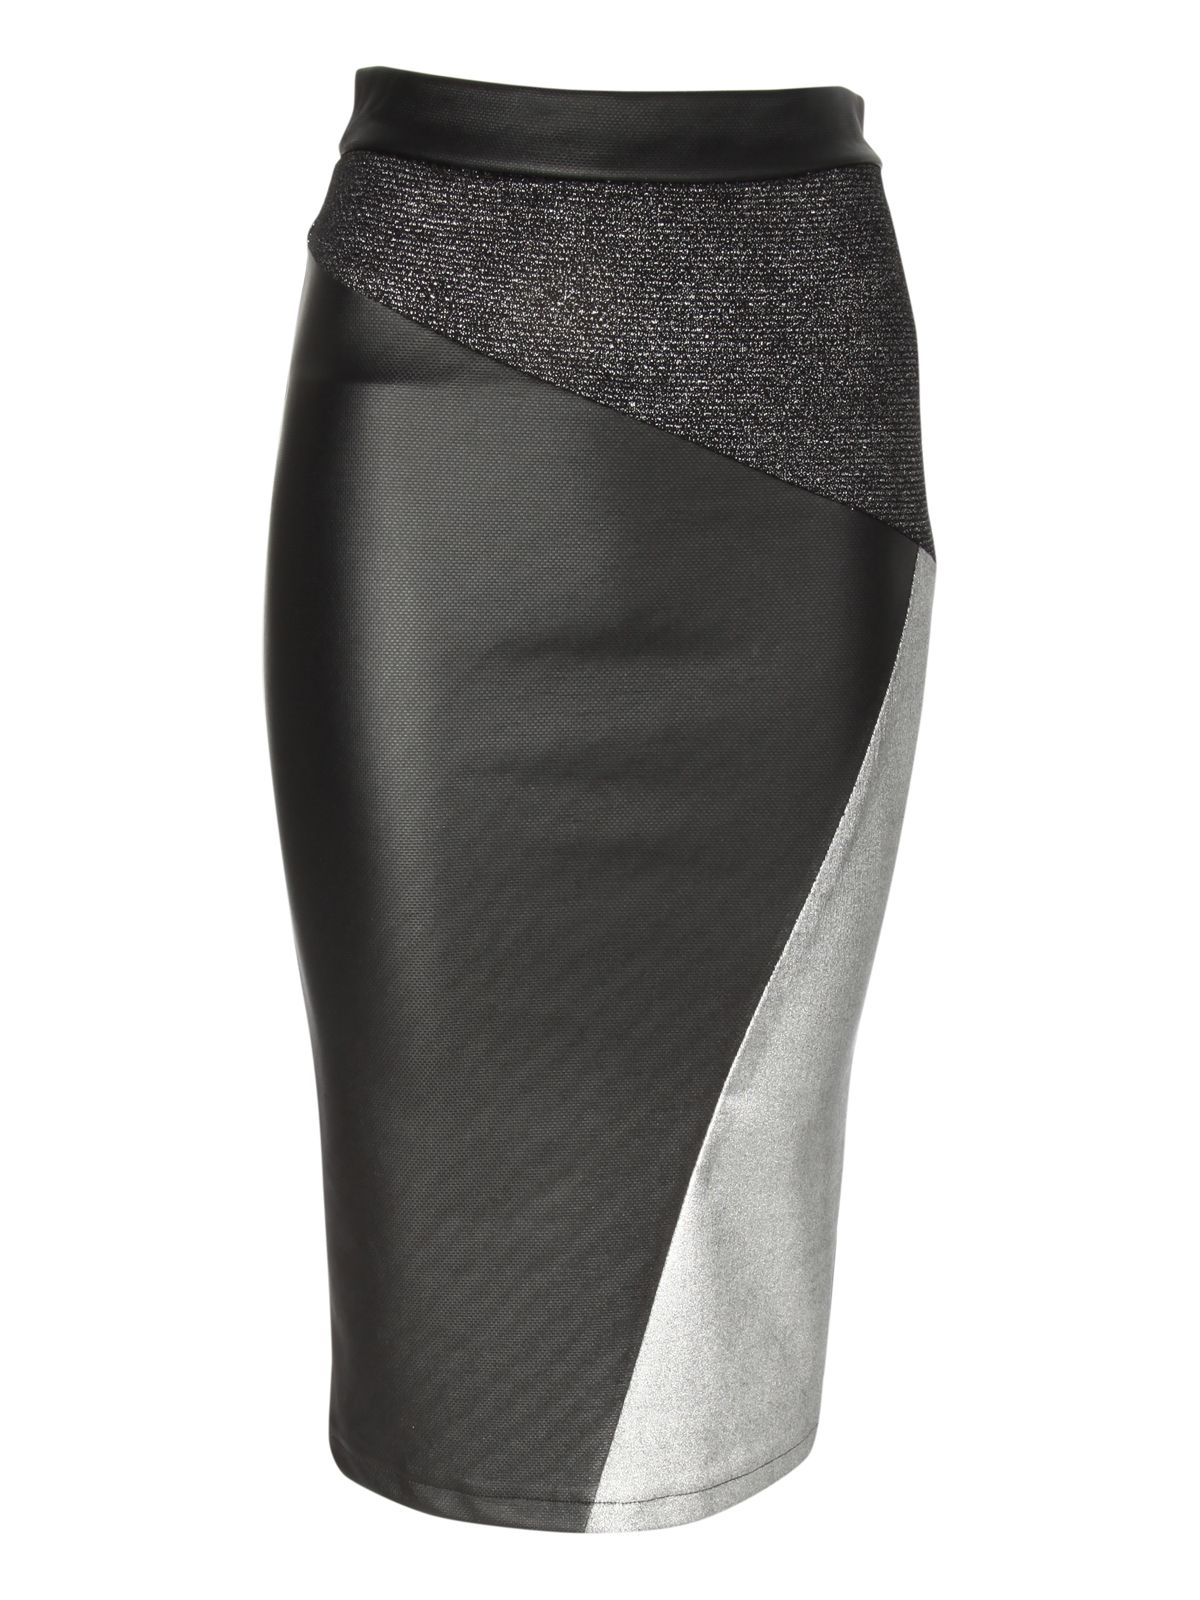 norman metallic cut about pencil skirt in black